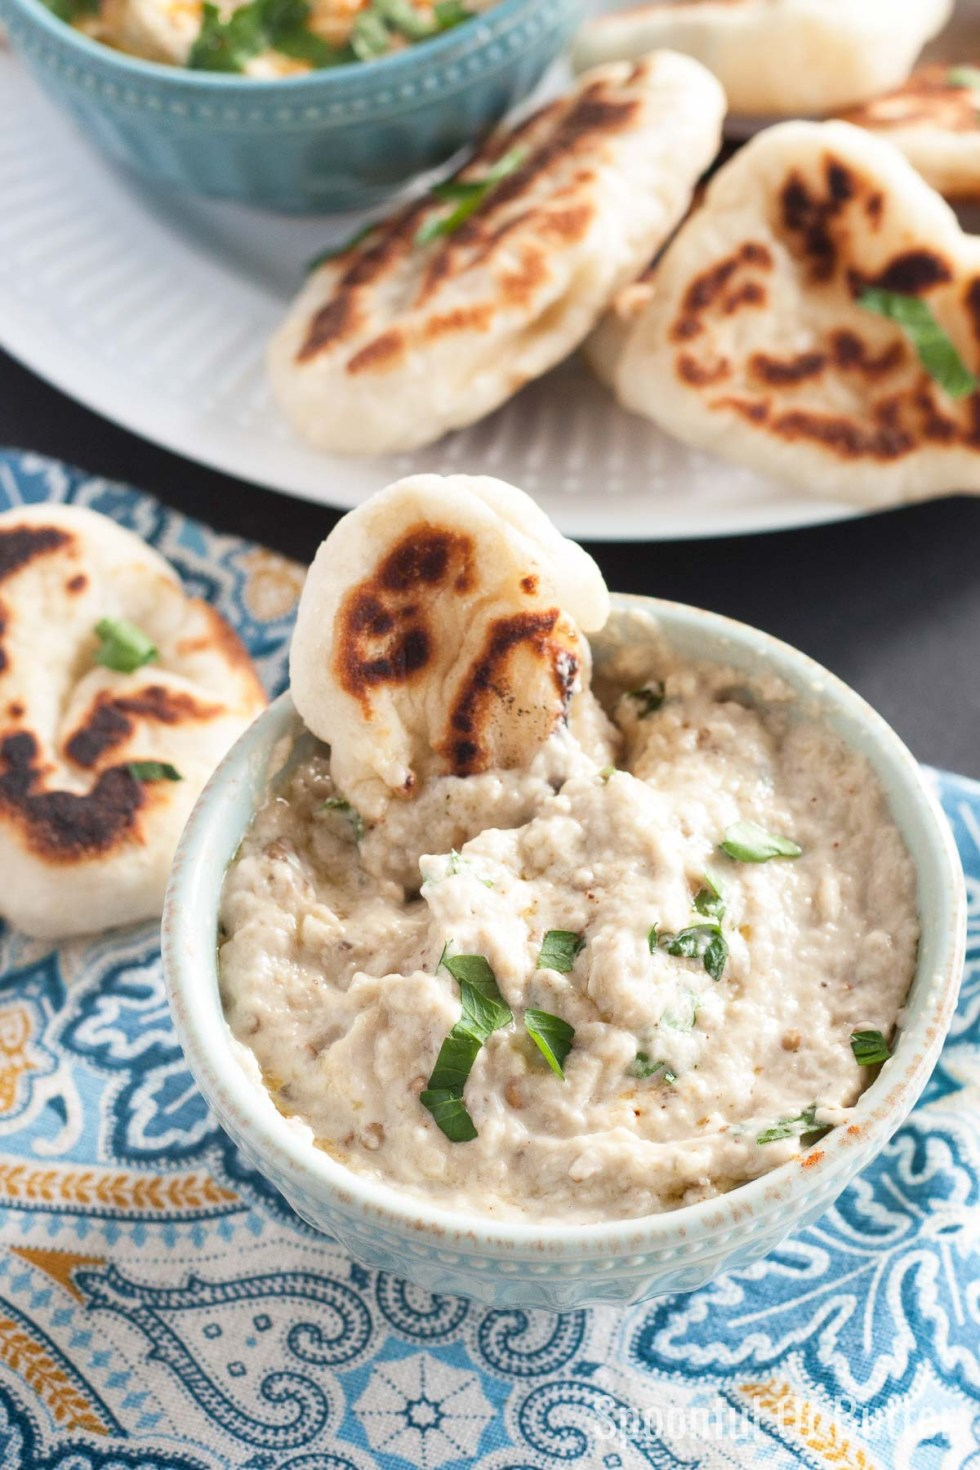 Rich, smoky, and creamy baba ganoush using 6 ingredients and no grill or gas stove required! This amazing roasted eggplant dip is a a great make-ahead dish as it tastes even better after a day or two in the fridge.